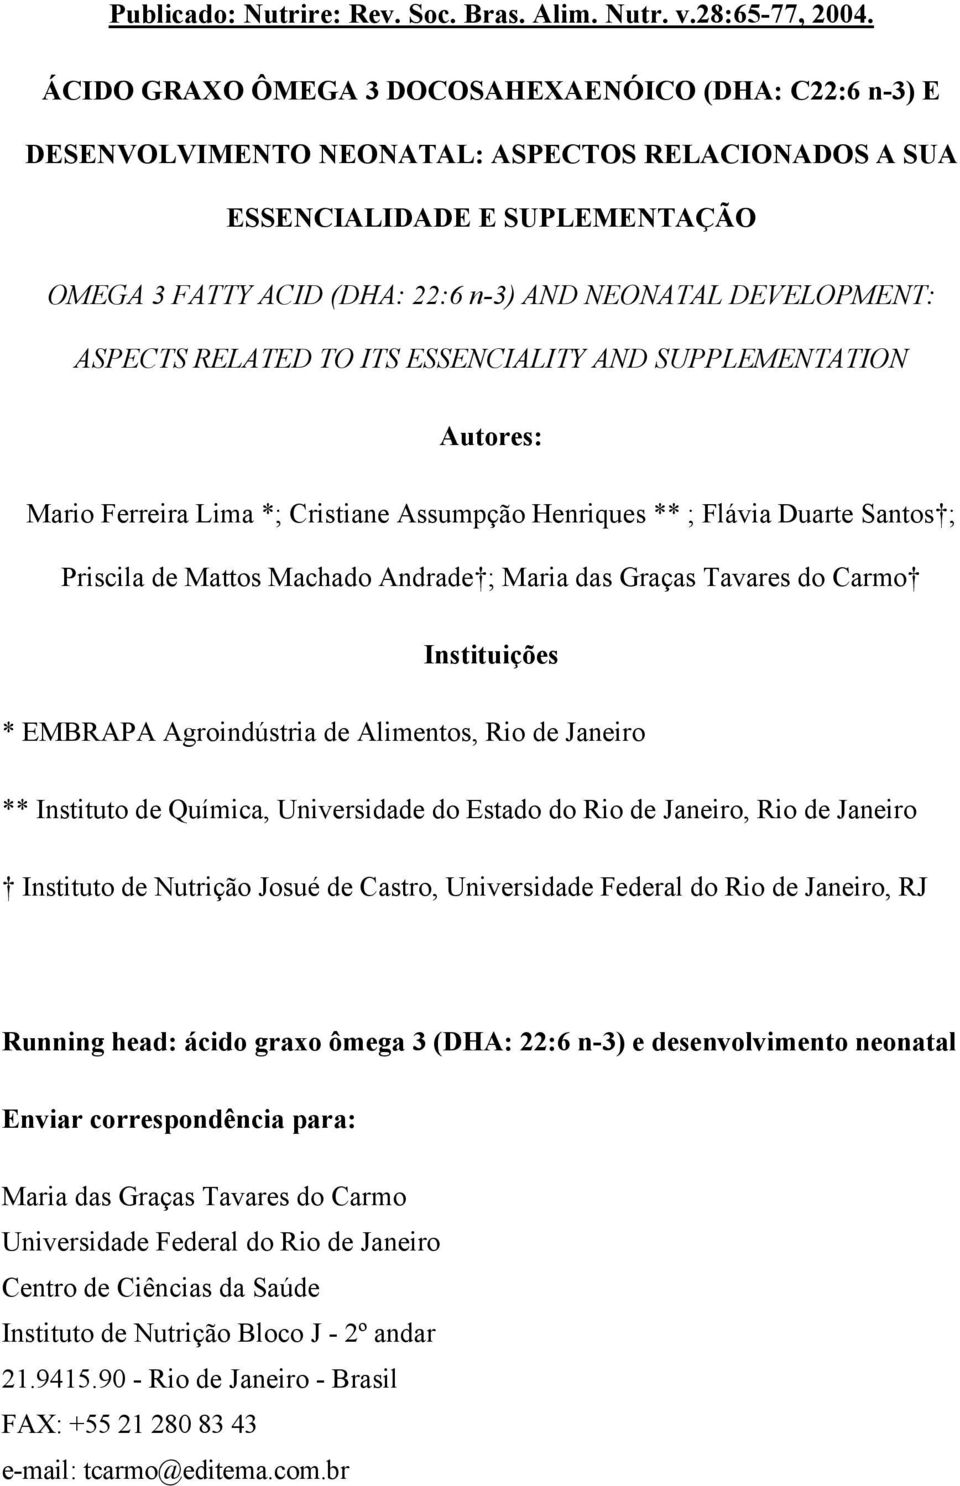 DEVELOPMENT: ASPECTS RELATED TO ITS ESSENCIALITY AND SUPPLEMENTATION Autores: Mario Ferreira Lima *; Cristiane Assumpção Henriques ** ; Flávia Duarte Santos ; Priscila de Mattos Machado Andrade ;